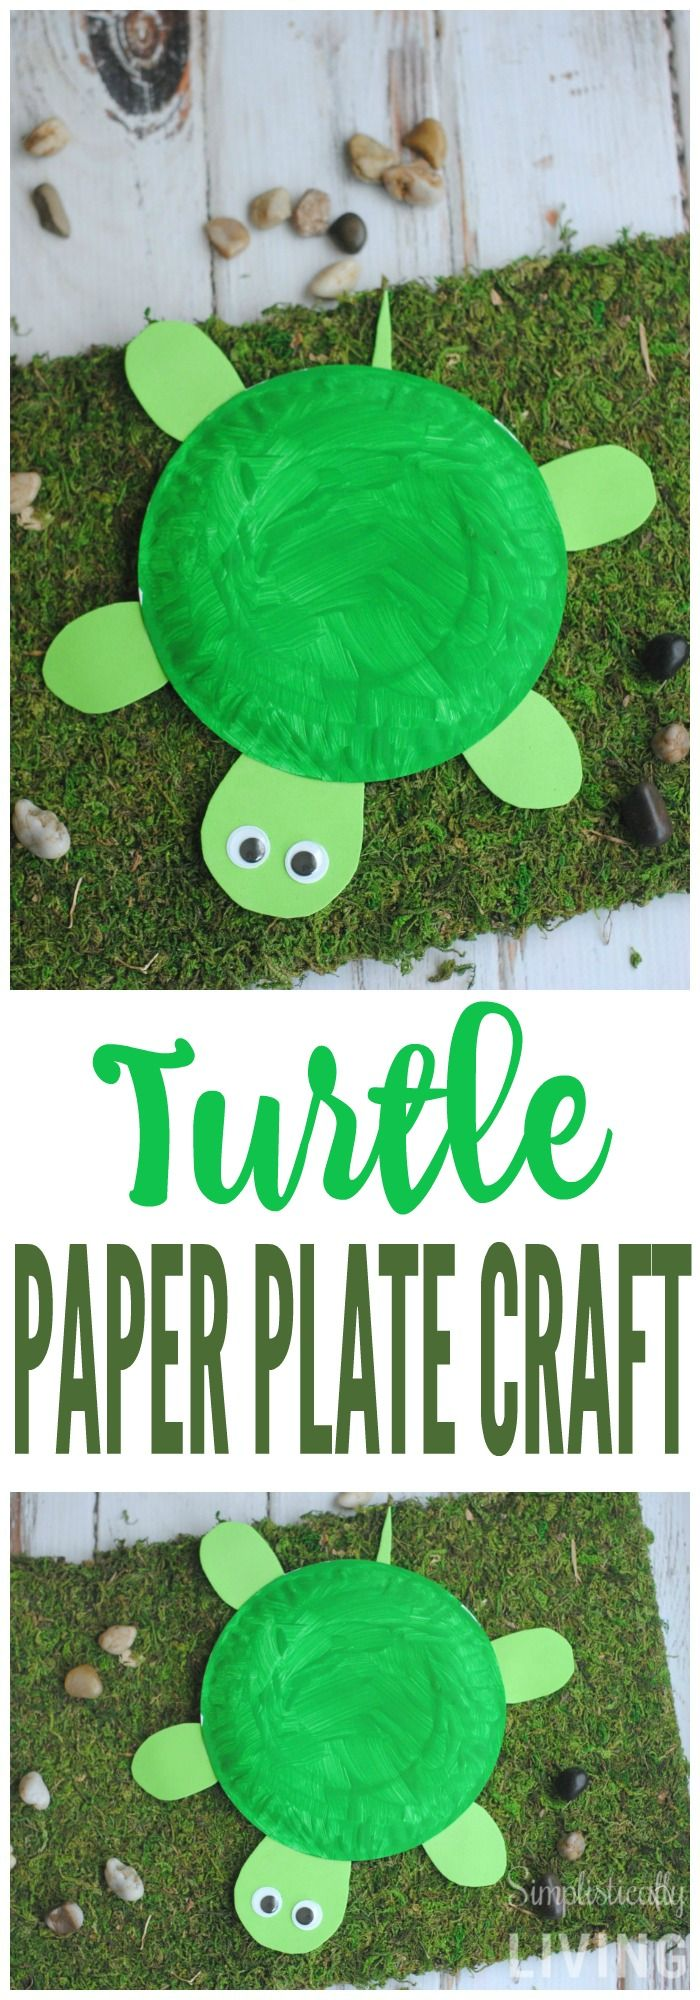 DIY Turtle Paper Plate Simplistically Living